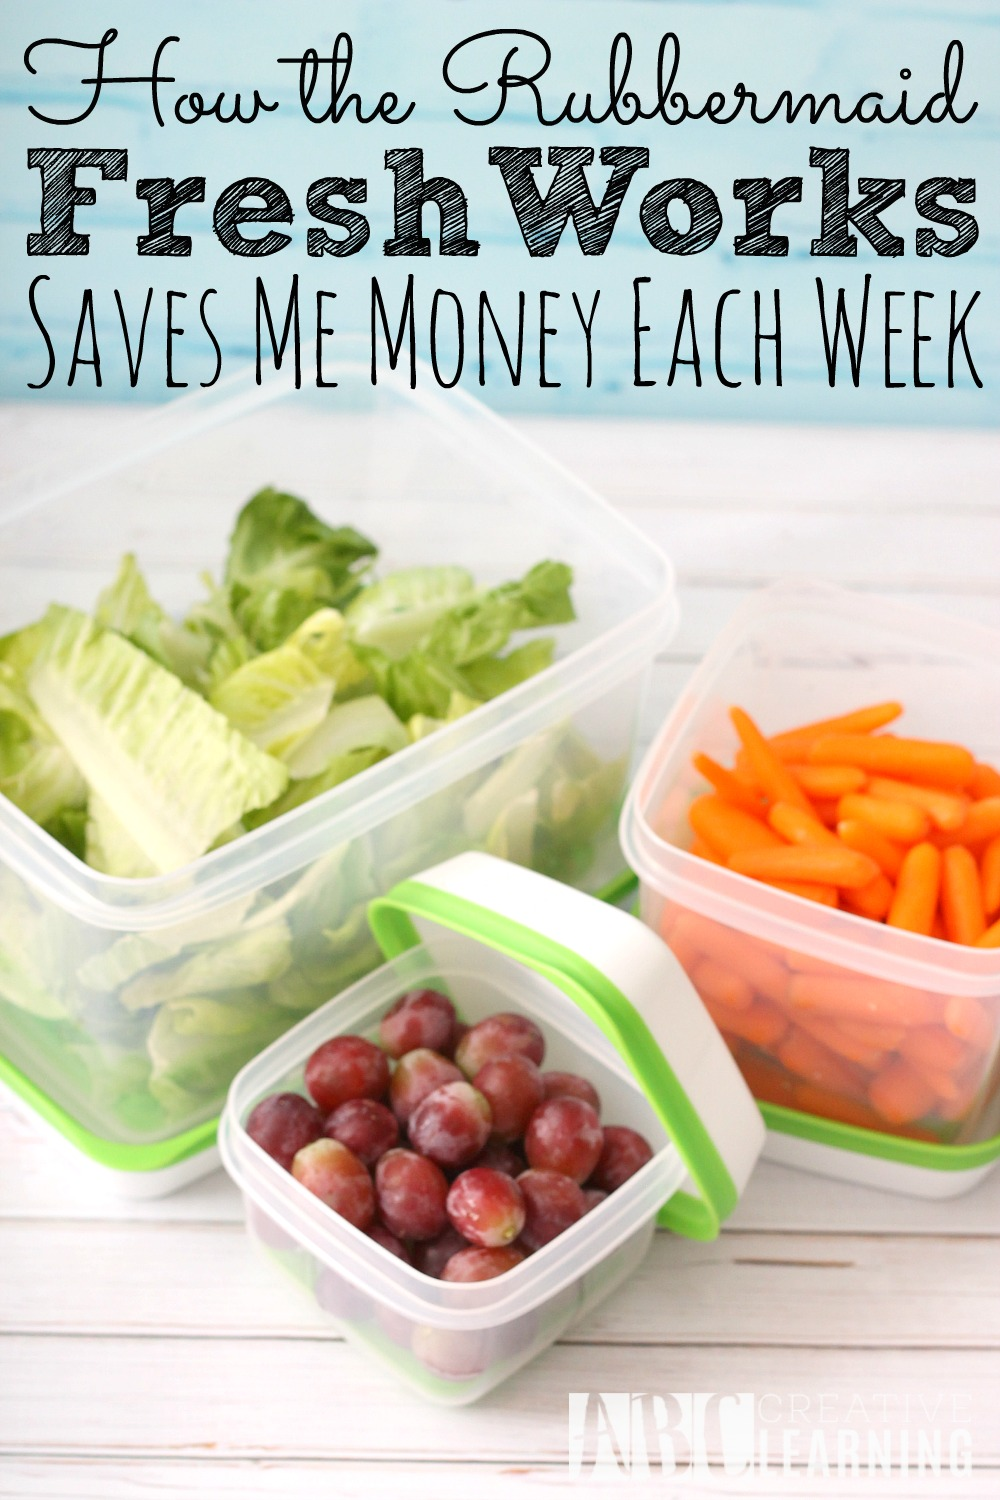 How The Rubbermaid FreshWorks Saves Me Money + Giveaway